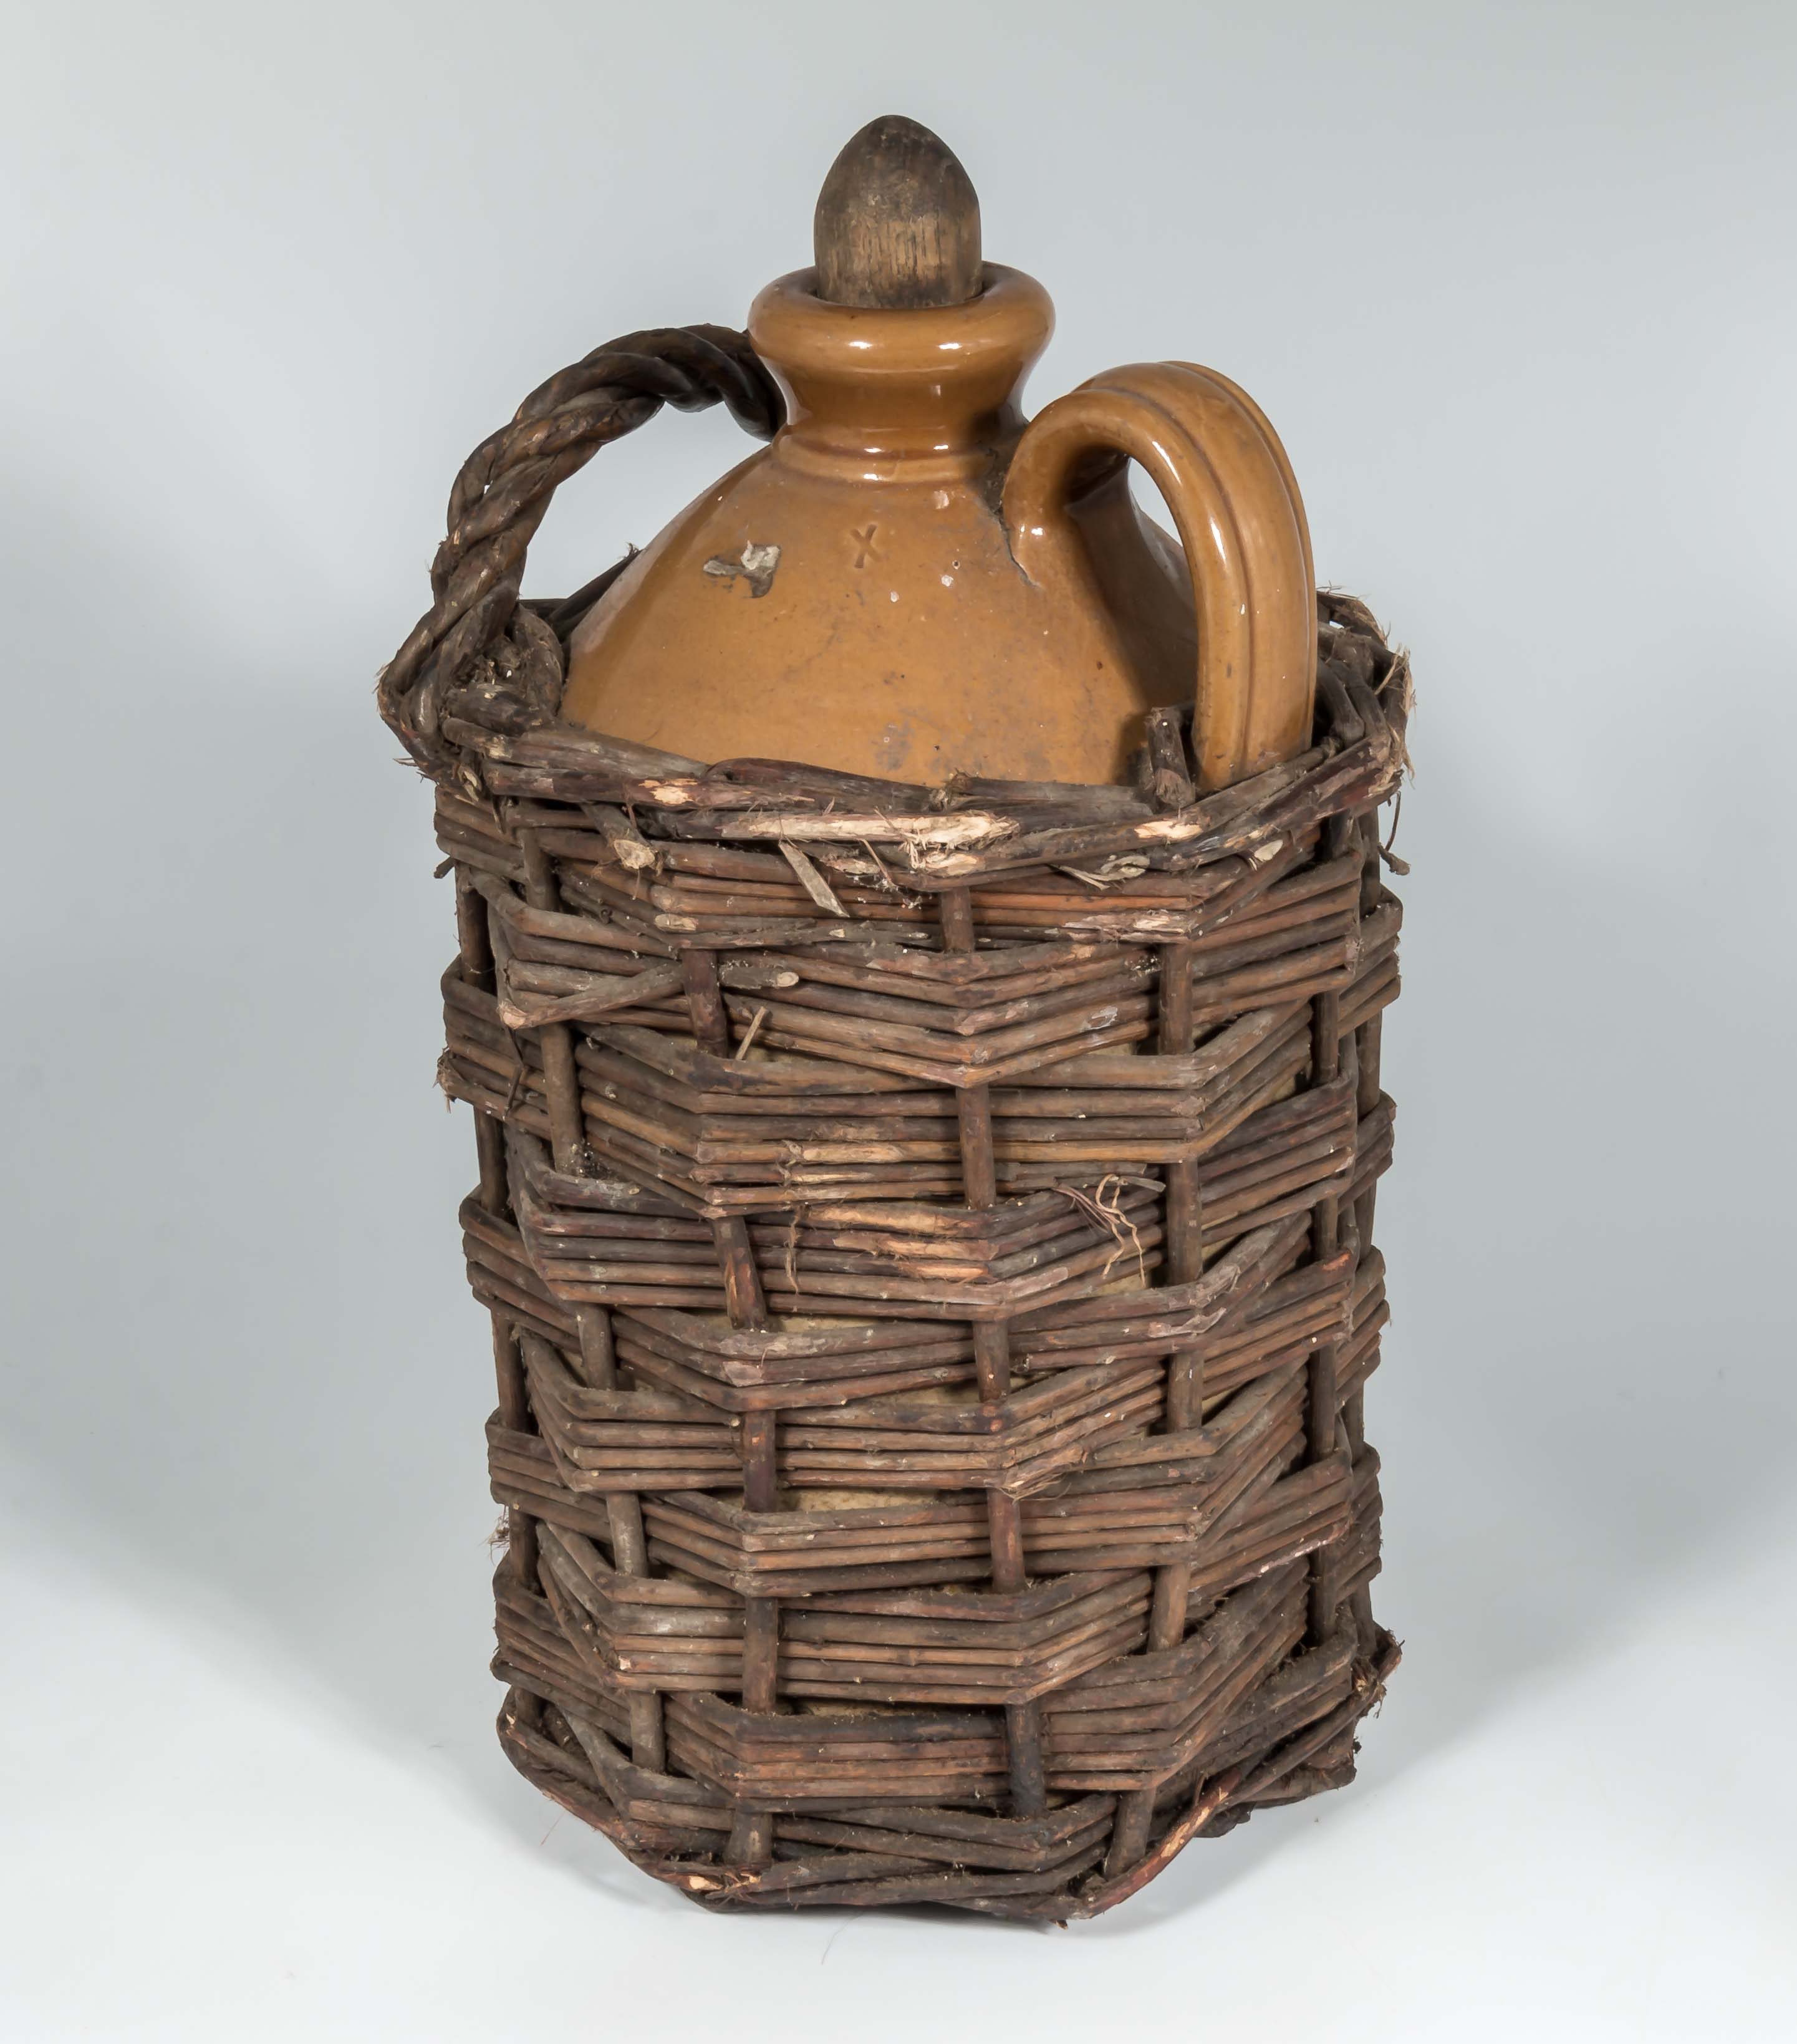 Lot 2 - A vintage earthenware wicker bottle